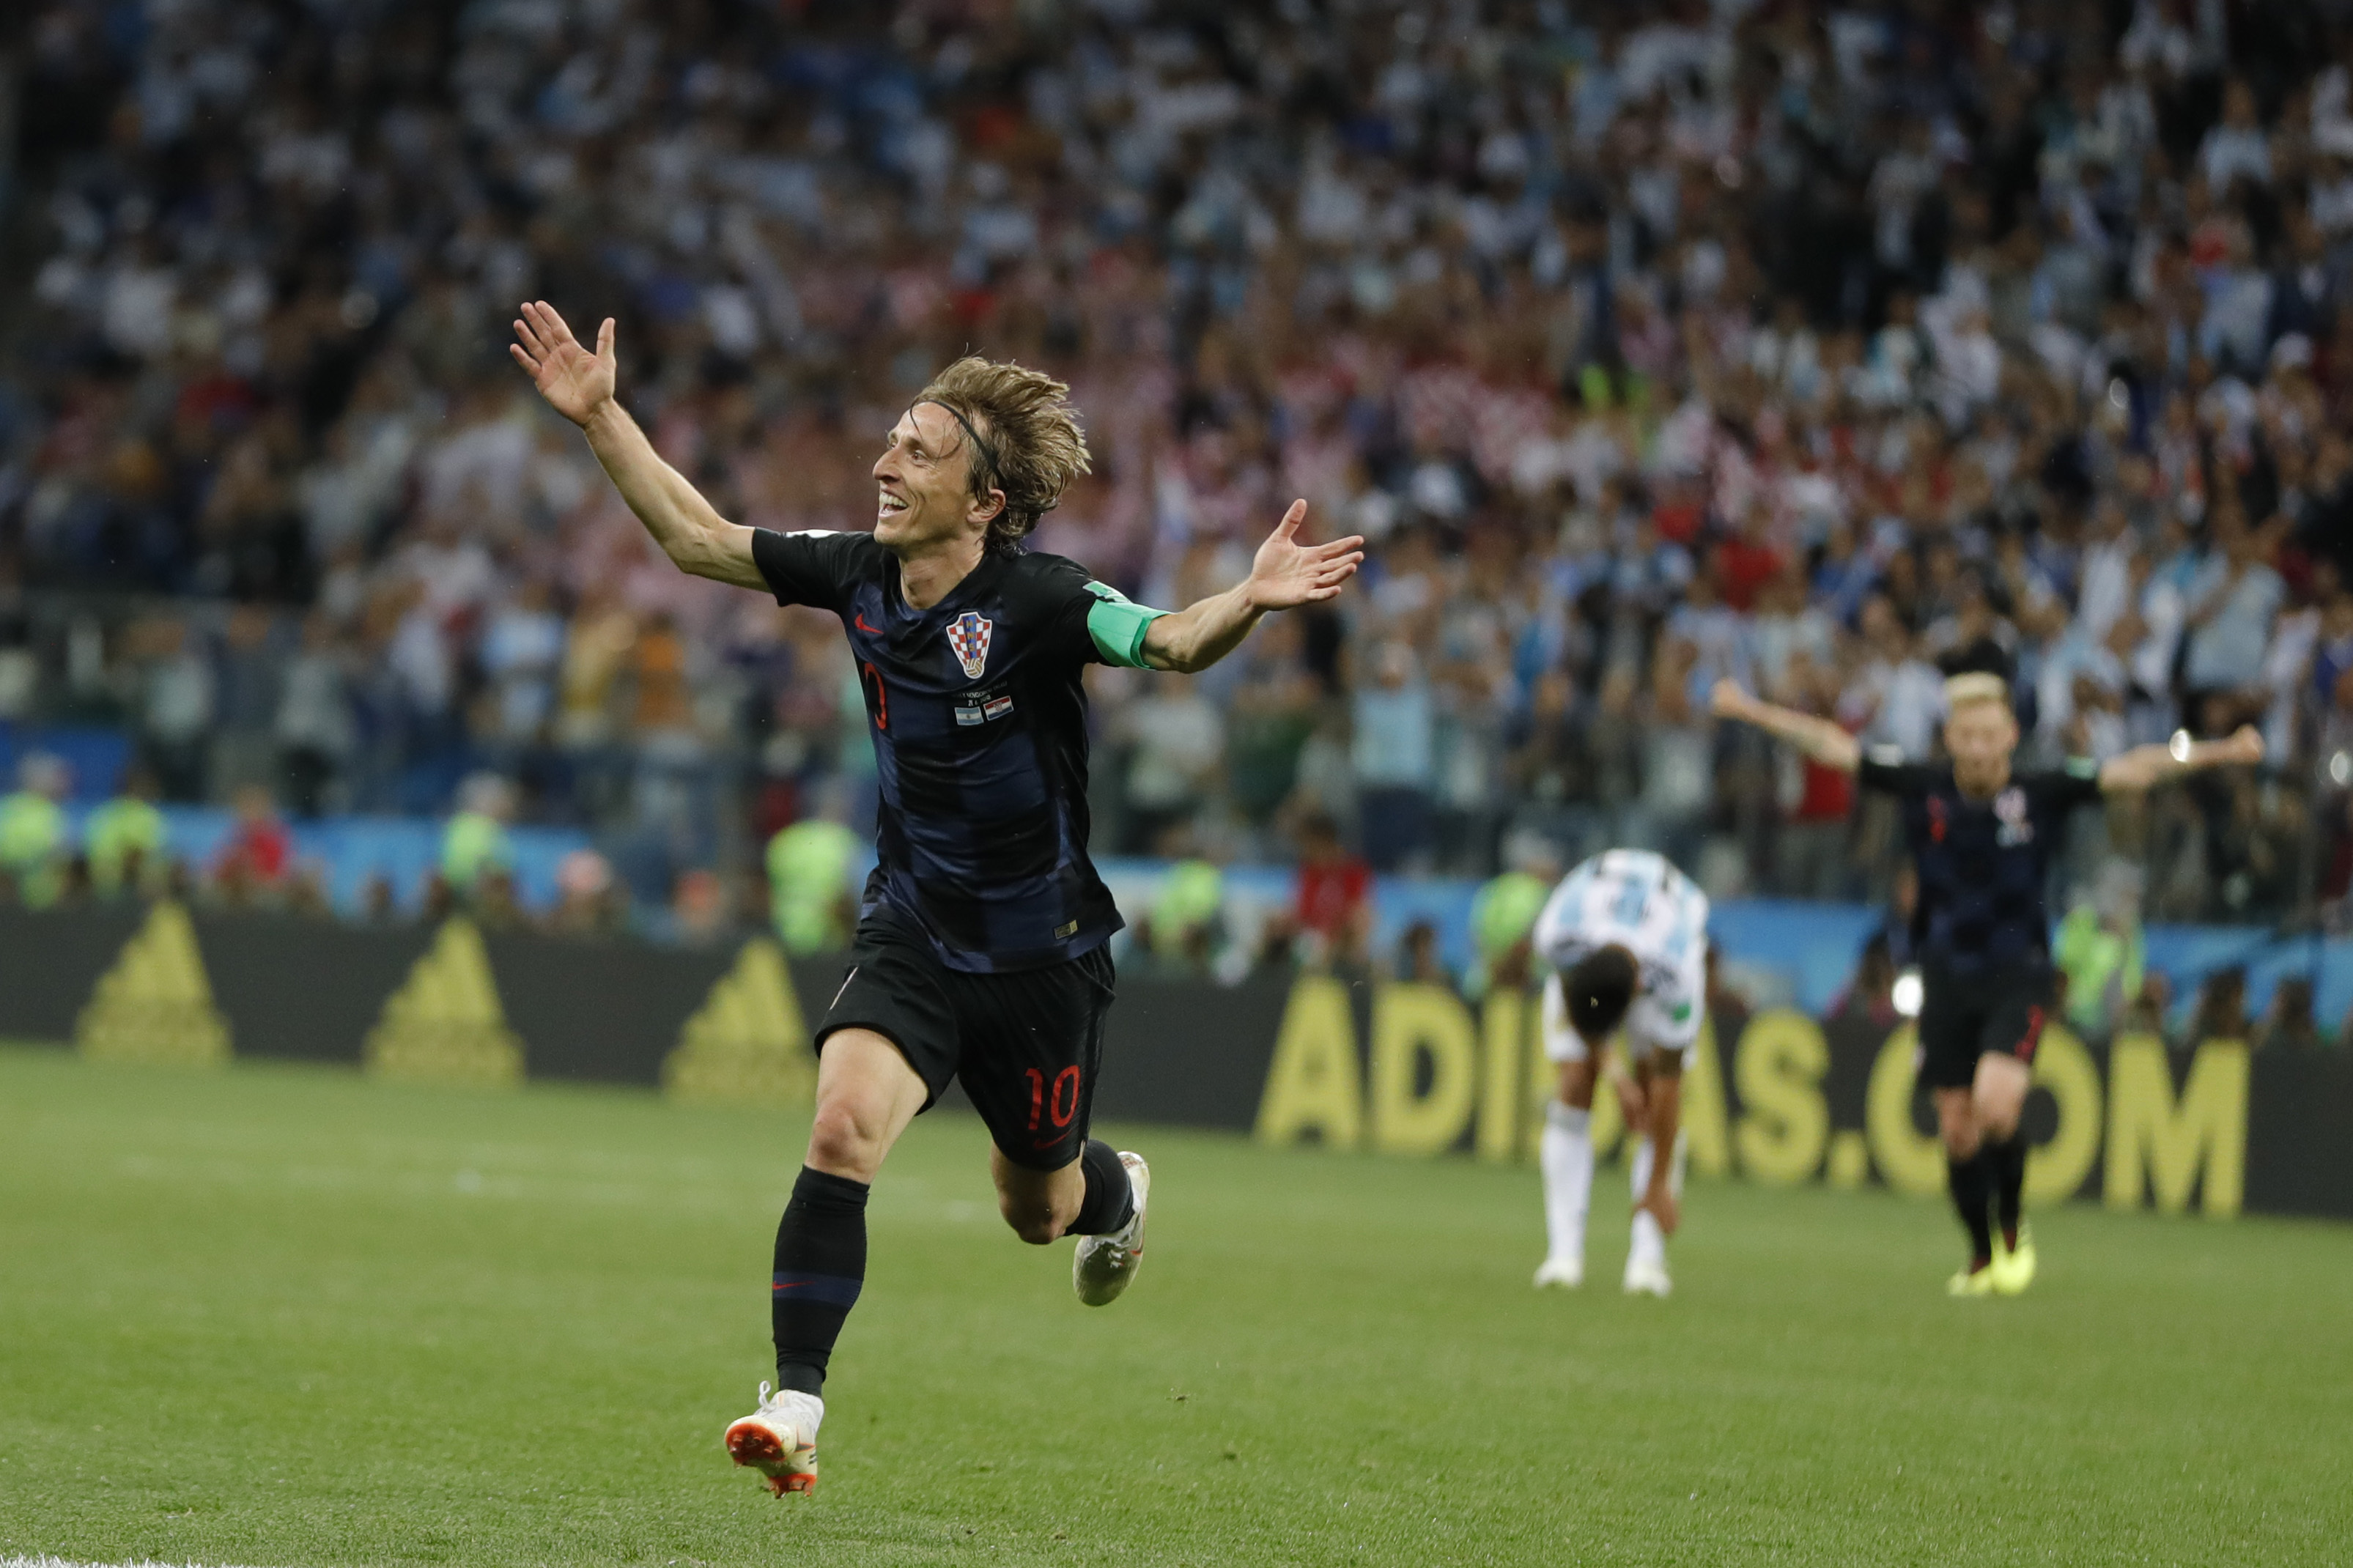 <div class='meta'><div class='origin-logo' data-origin='none'></div><span class='caption-text' data-credit='Ricardo Mazalan/AP Photo'>Croatia's Luka Modric celebrates with teammates after scoring during the group D match against Argentina on Thursday, June 21, 2018. Modric scored once in Croatia's 3-0 victory.</span></div>